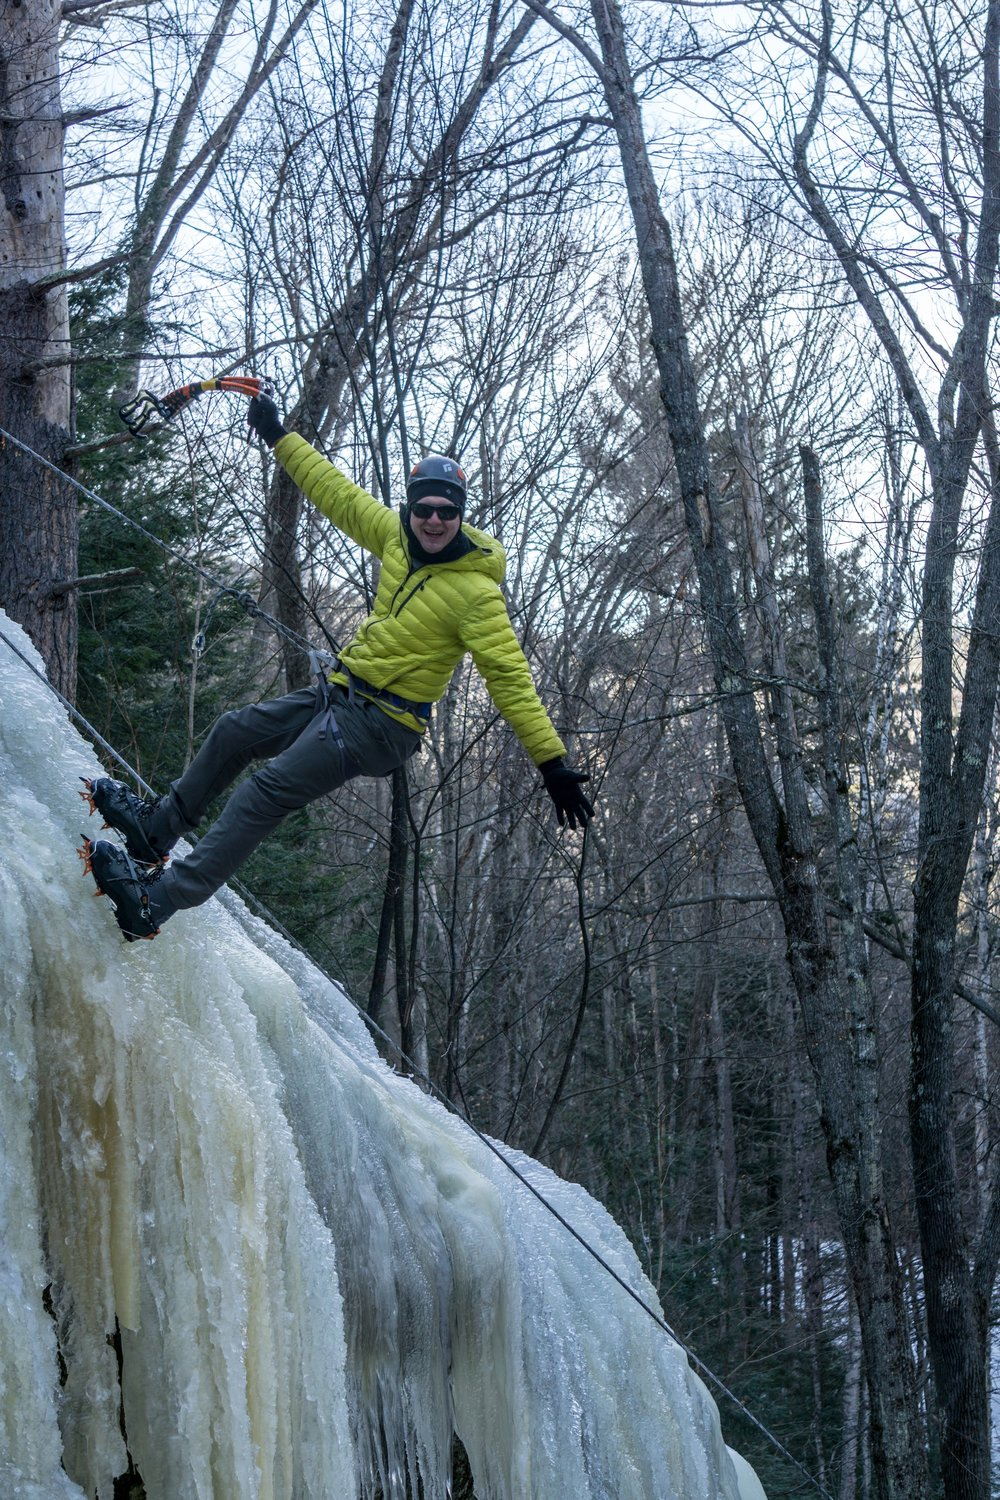 BSA Winter High Adventure - Moosilauke and Ice Climbing 0133 2018-01-15.jpg